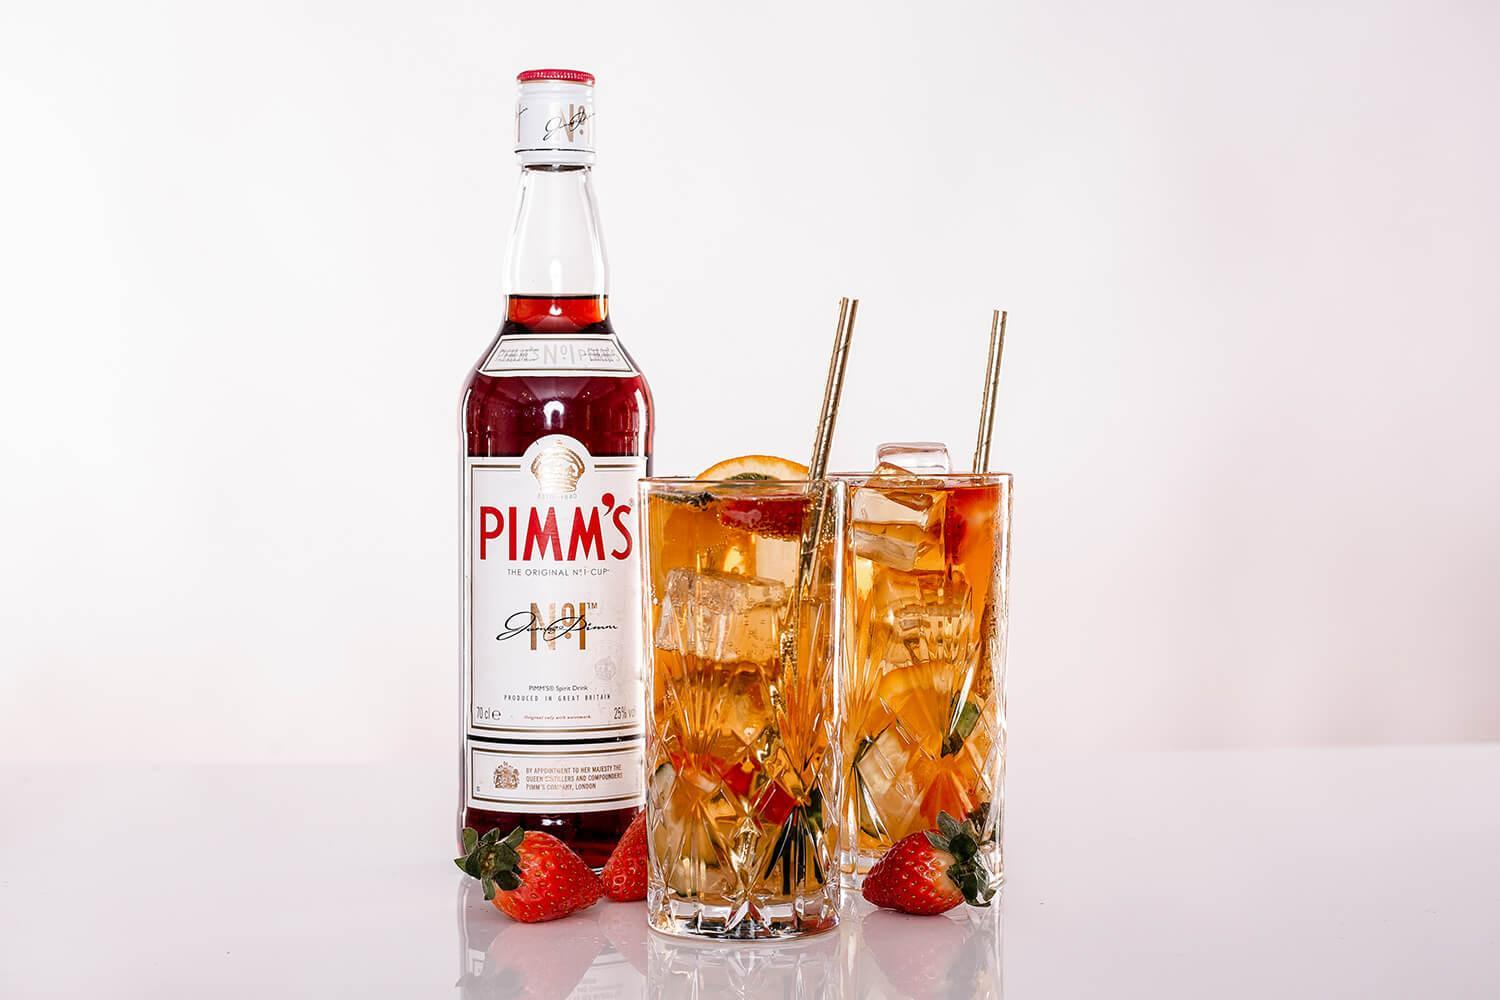 Pimms Welcome Drinks